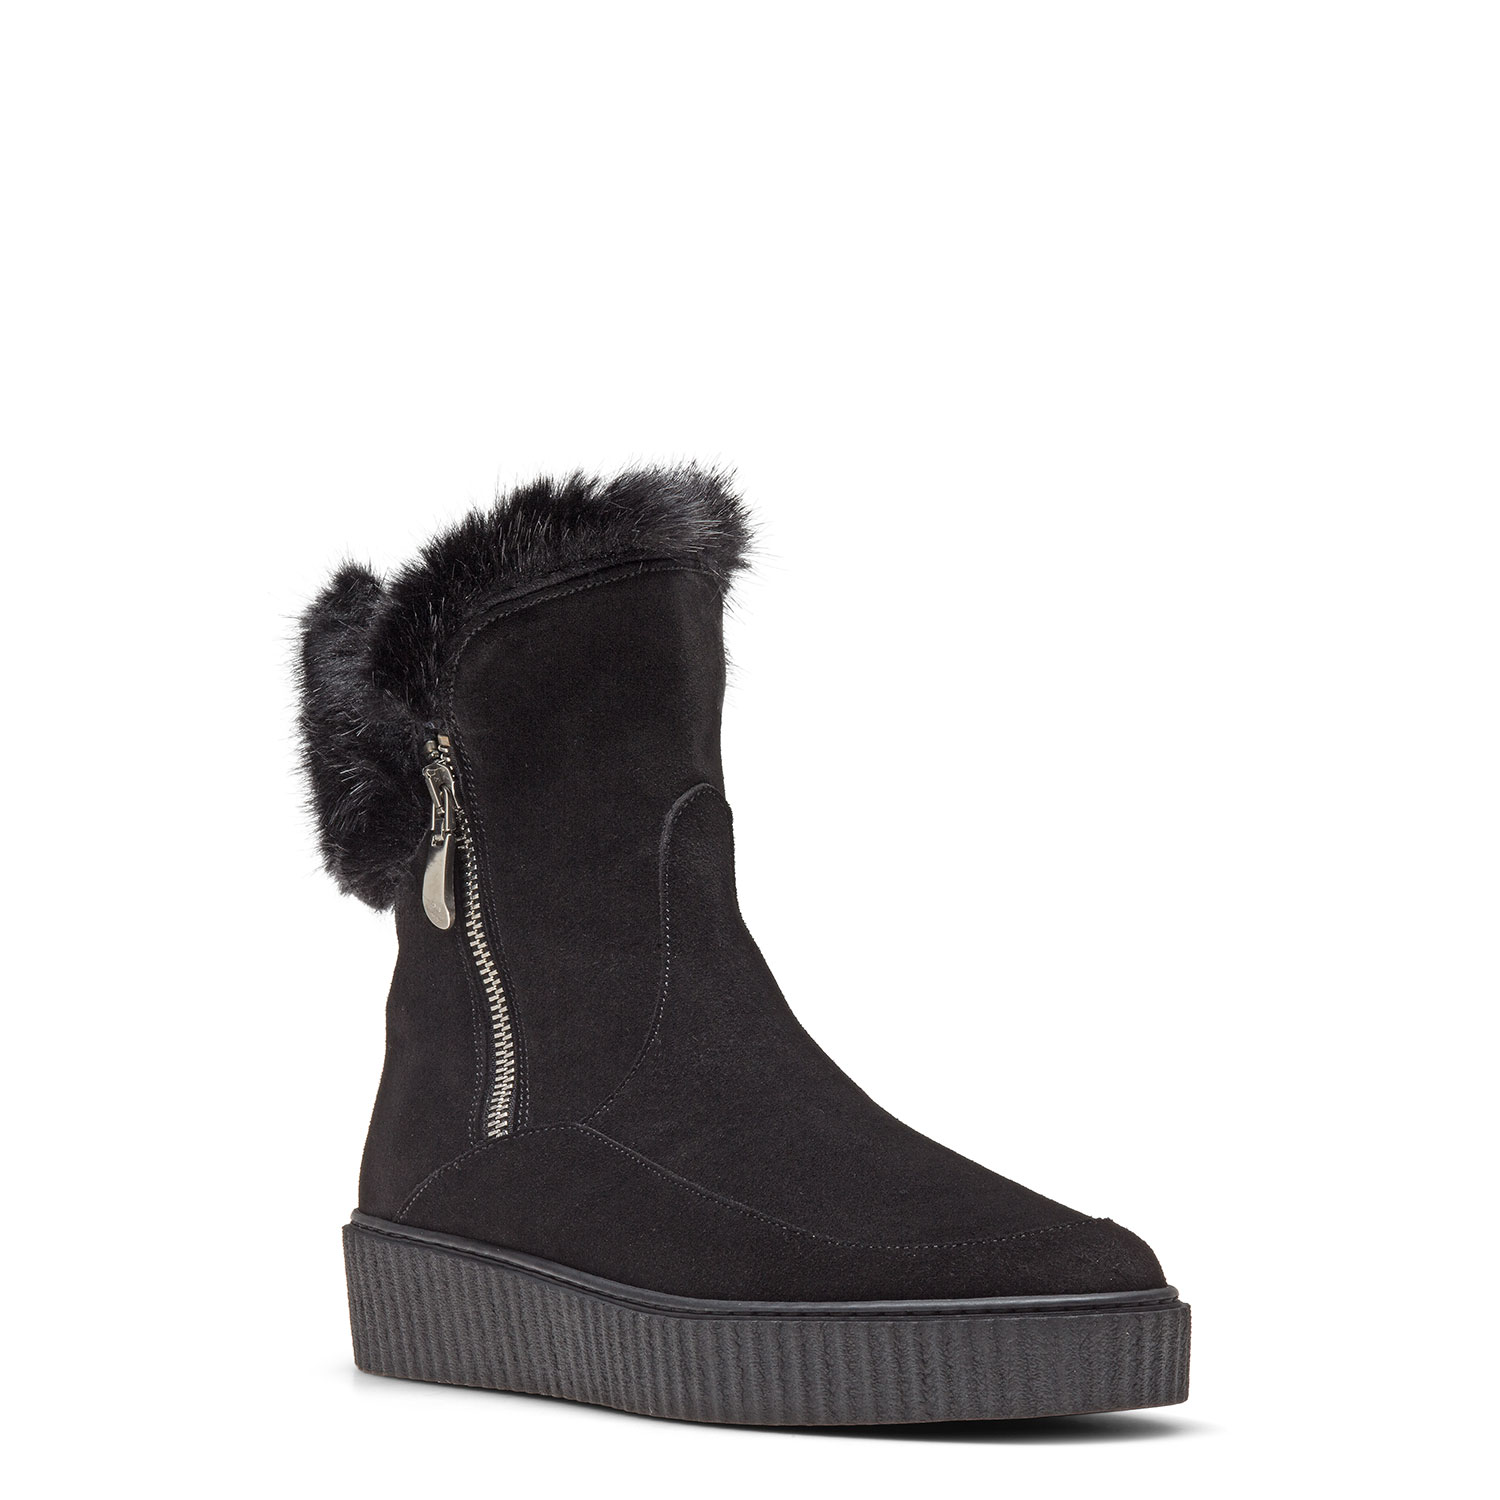 Women's fur-lined ankle boots CARLO PAZOLINI CR-VOE3-1